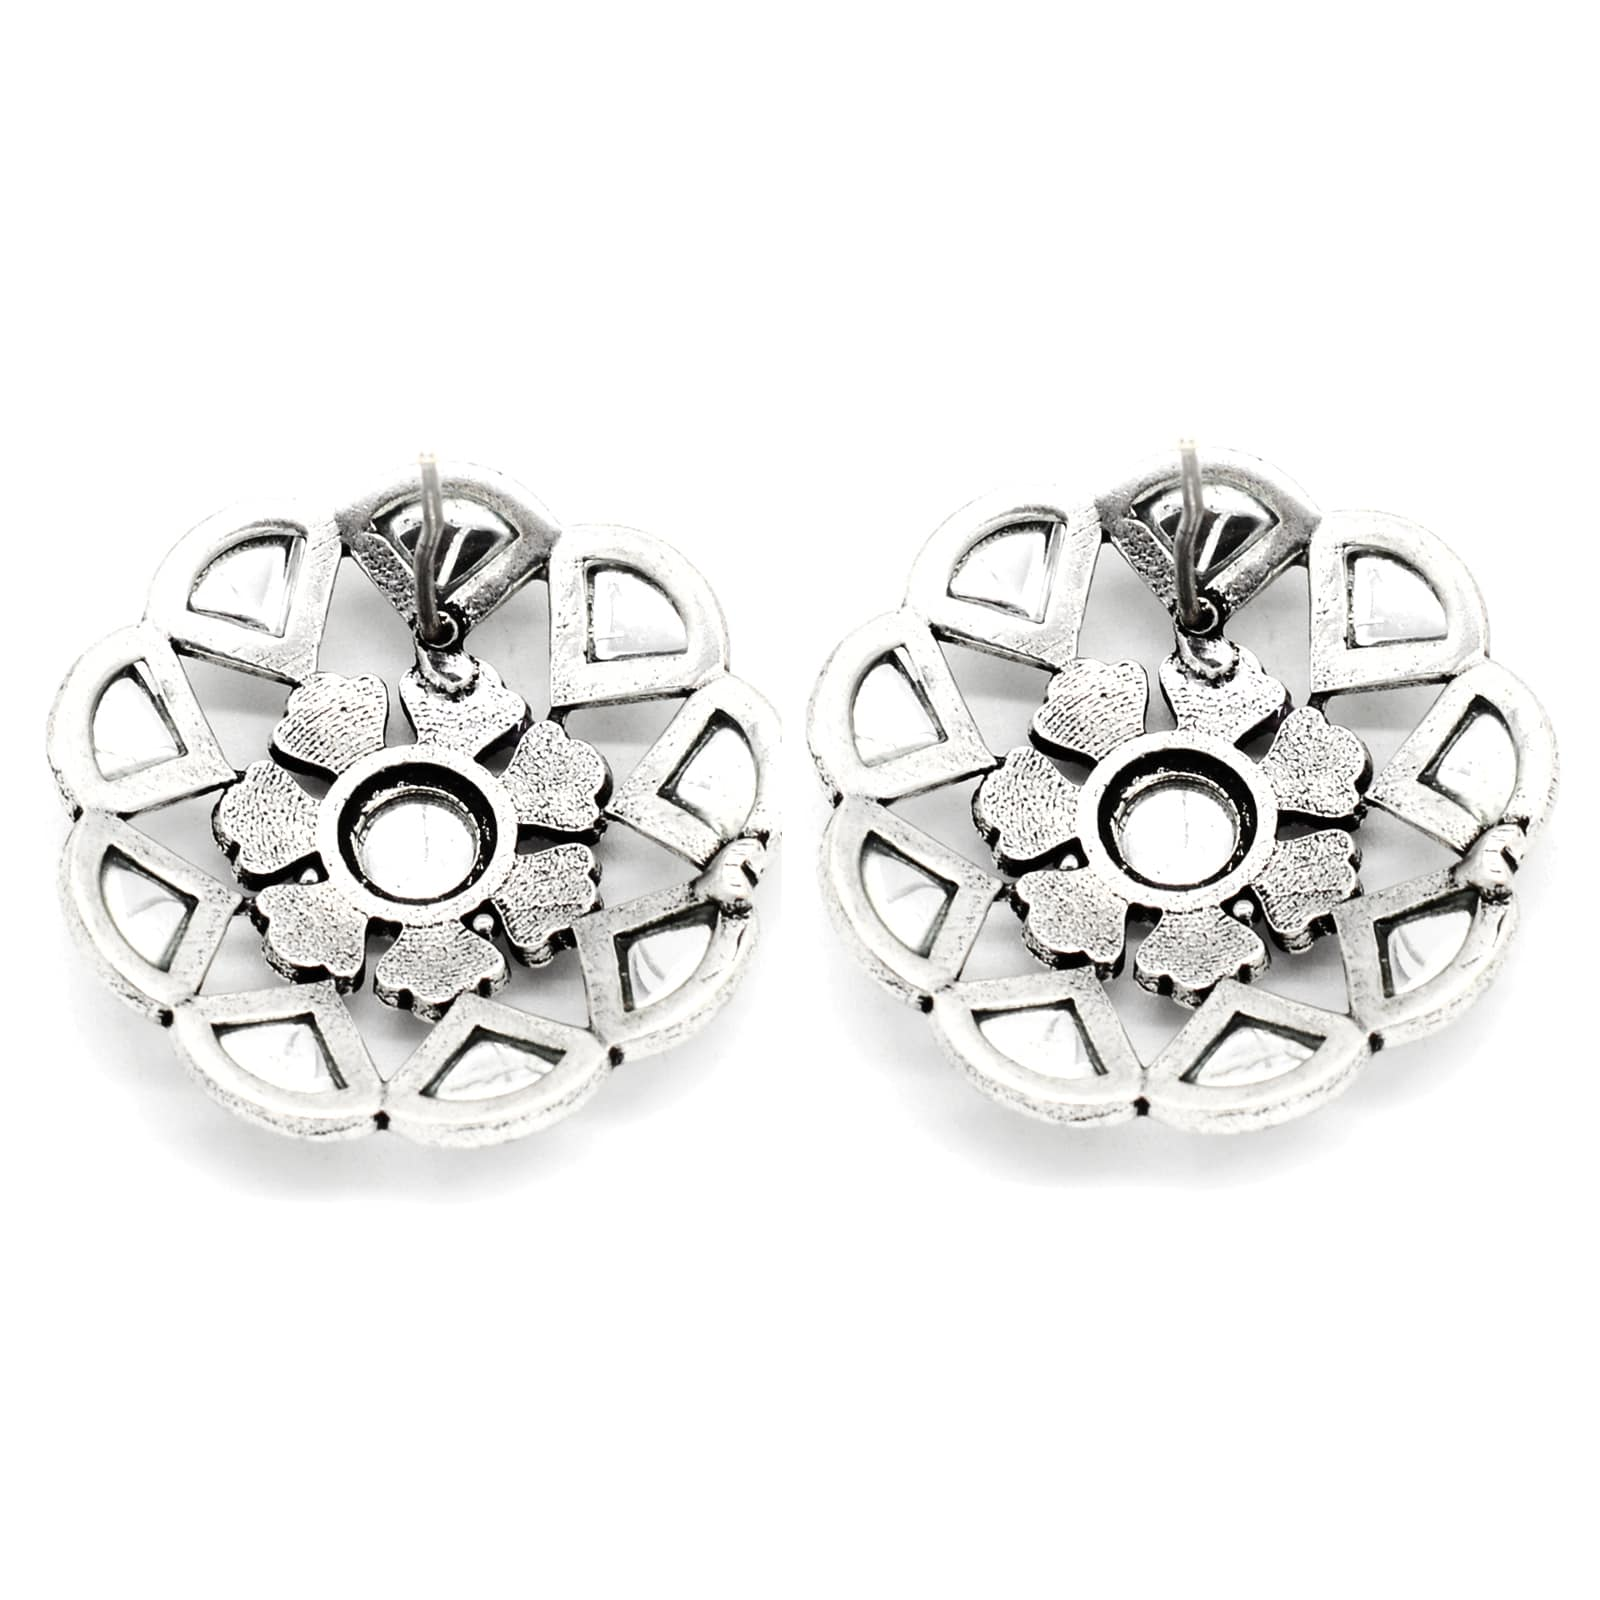 Chakra Polki Black Silver Earrings - Teejh